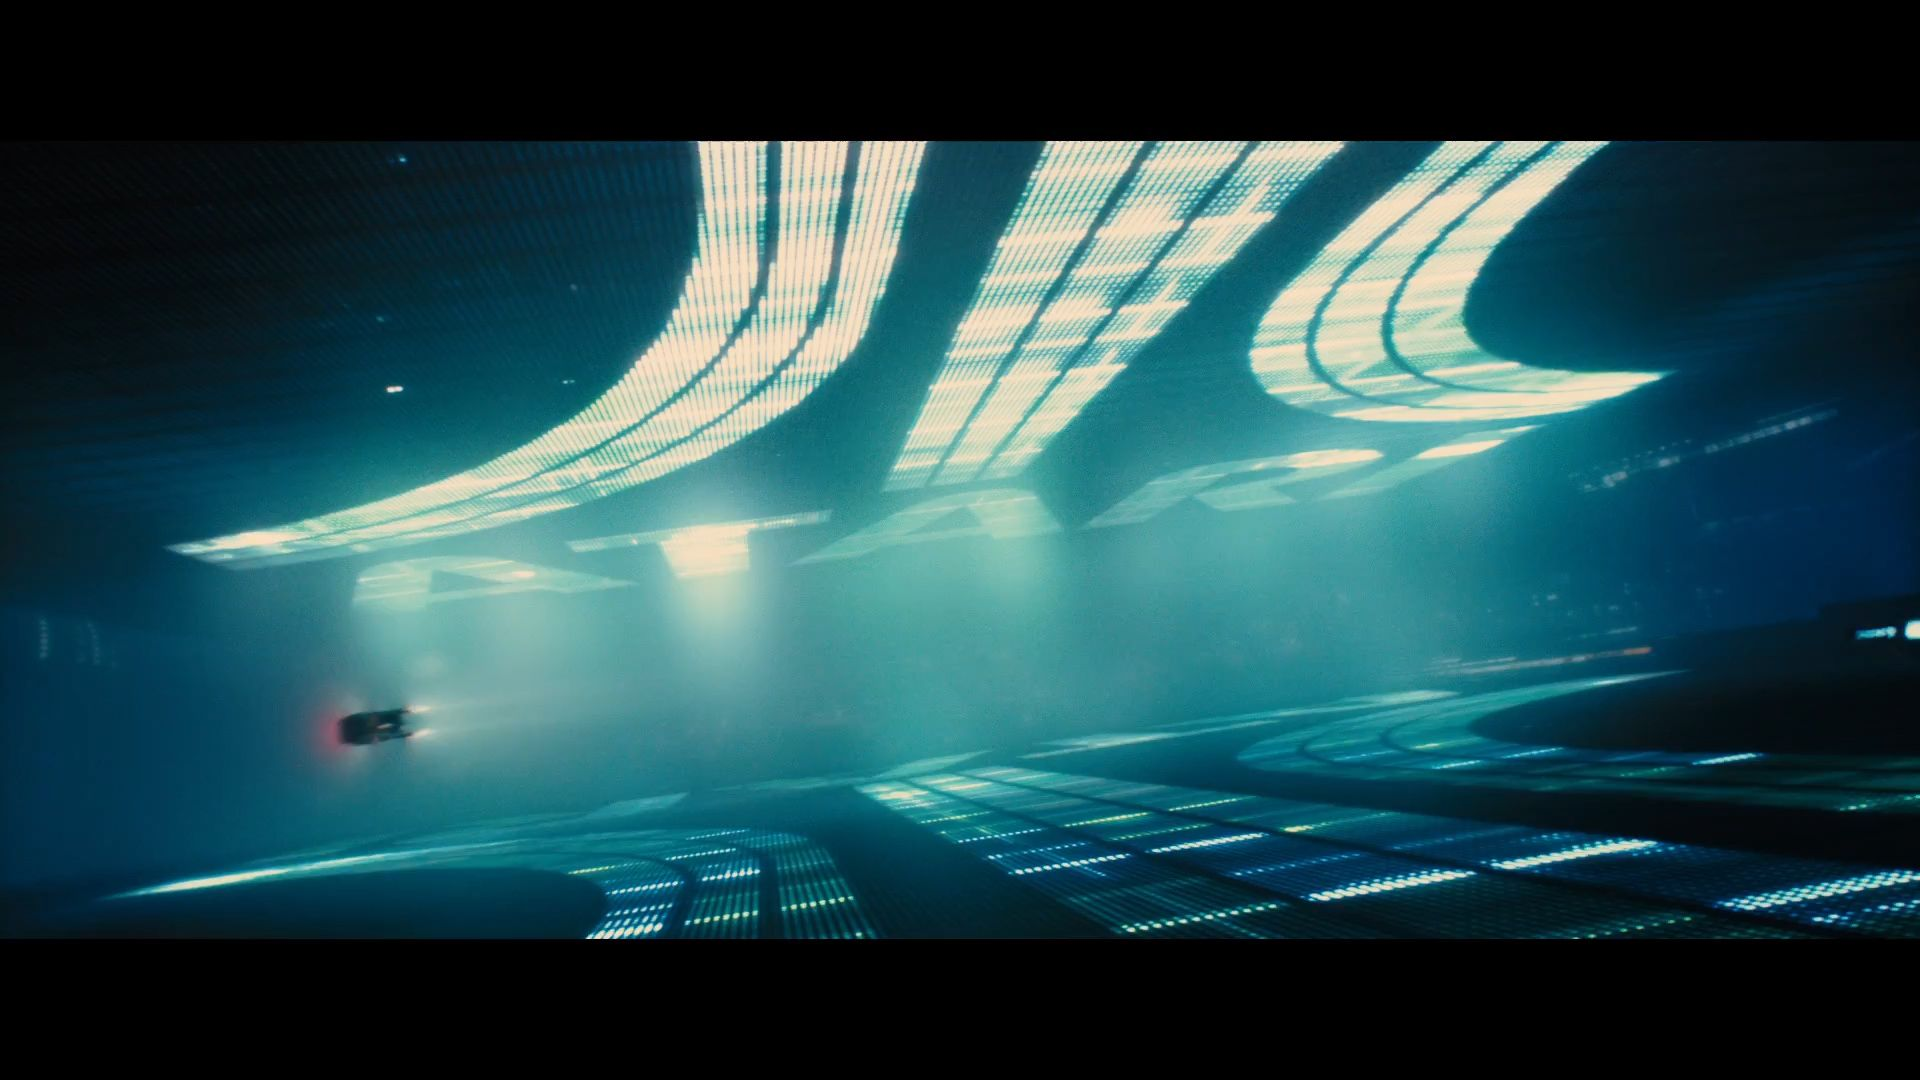 Blade Runner 2049 Wallpapers From Trailer (1920x1080